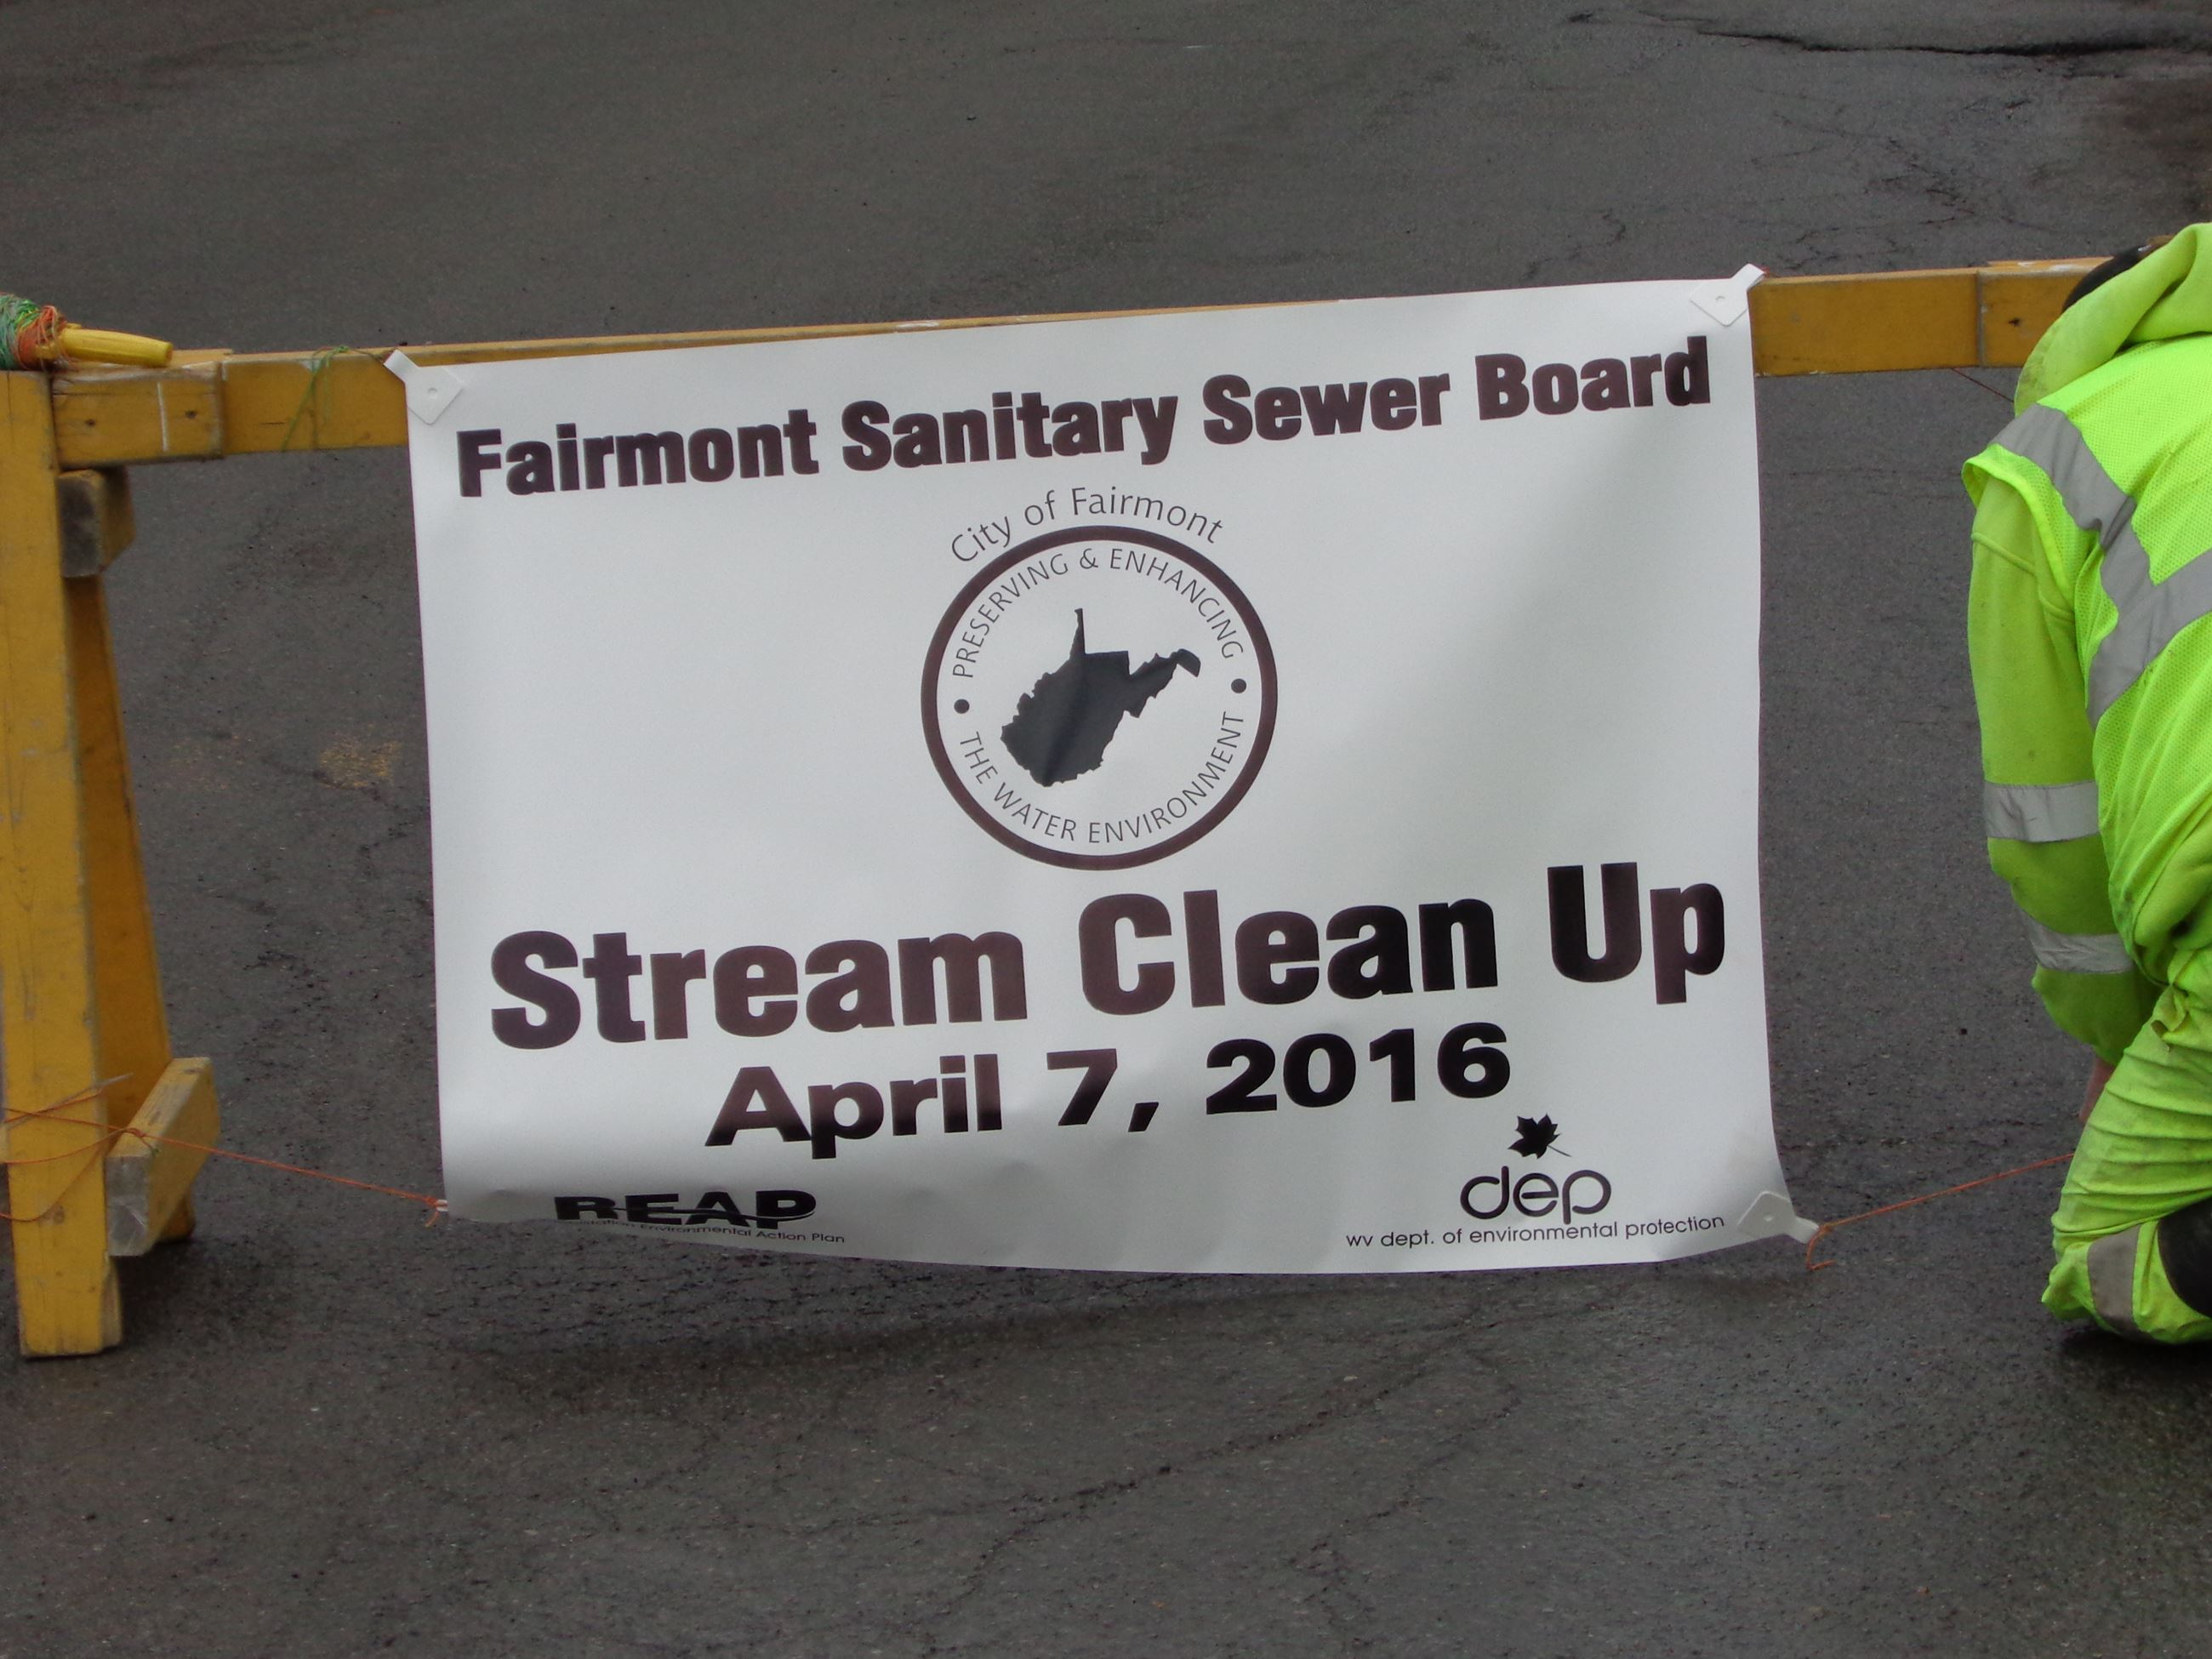 Stream Clean Up Day